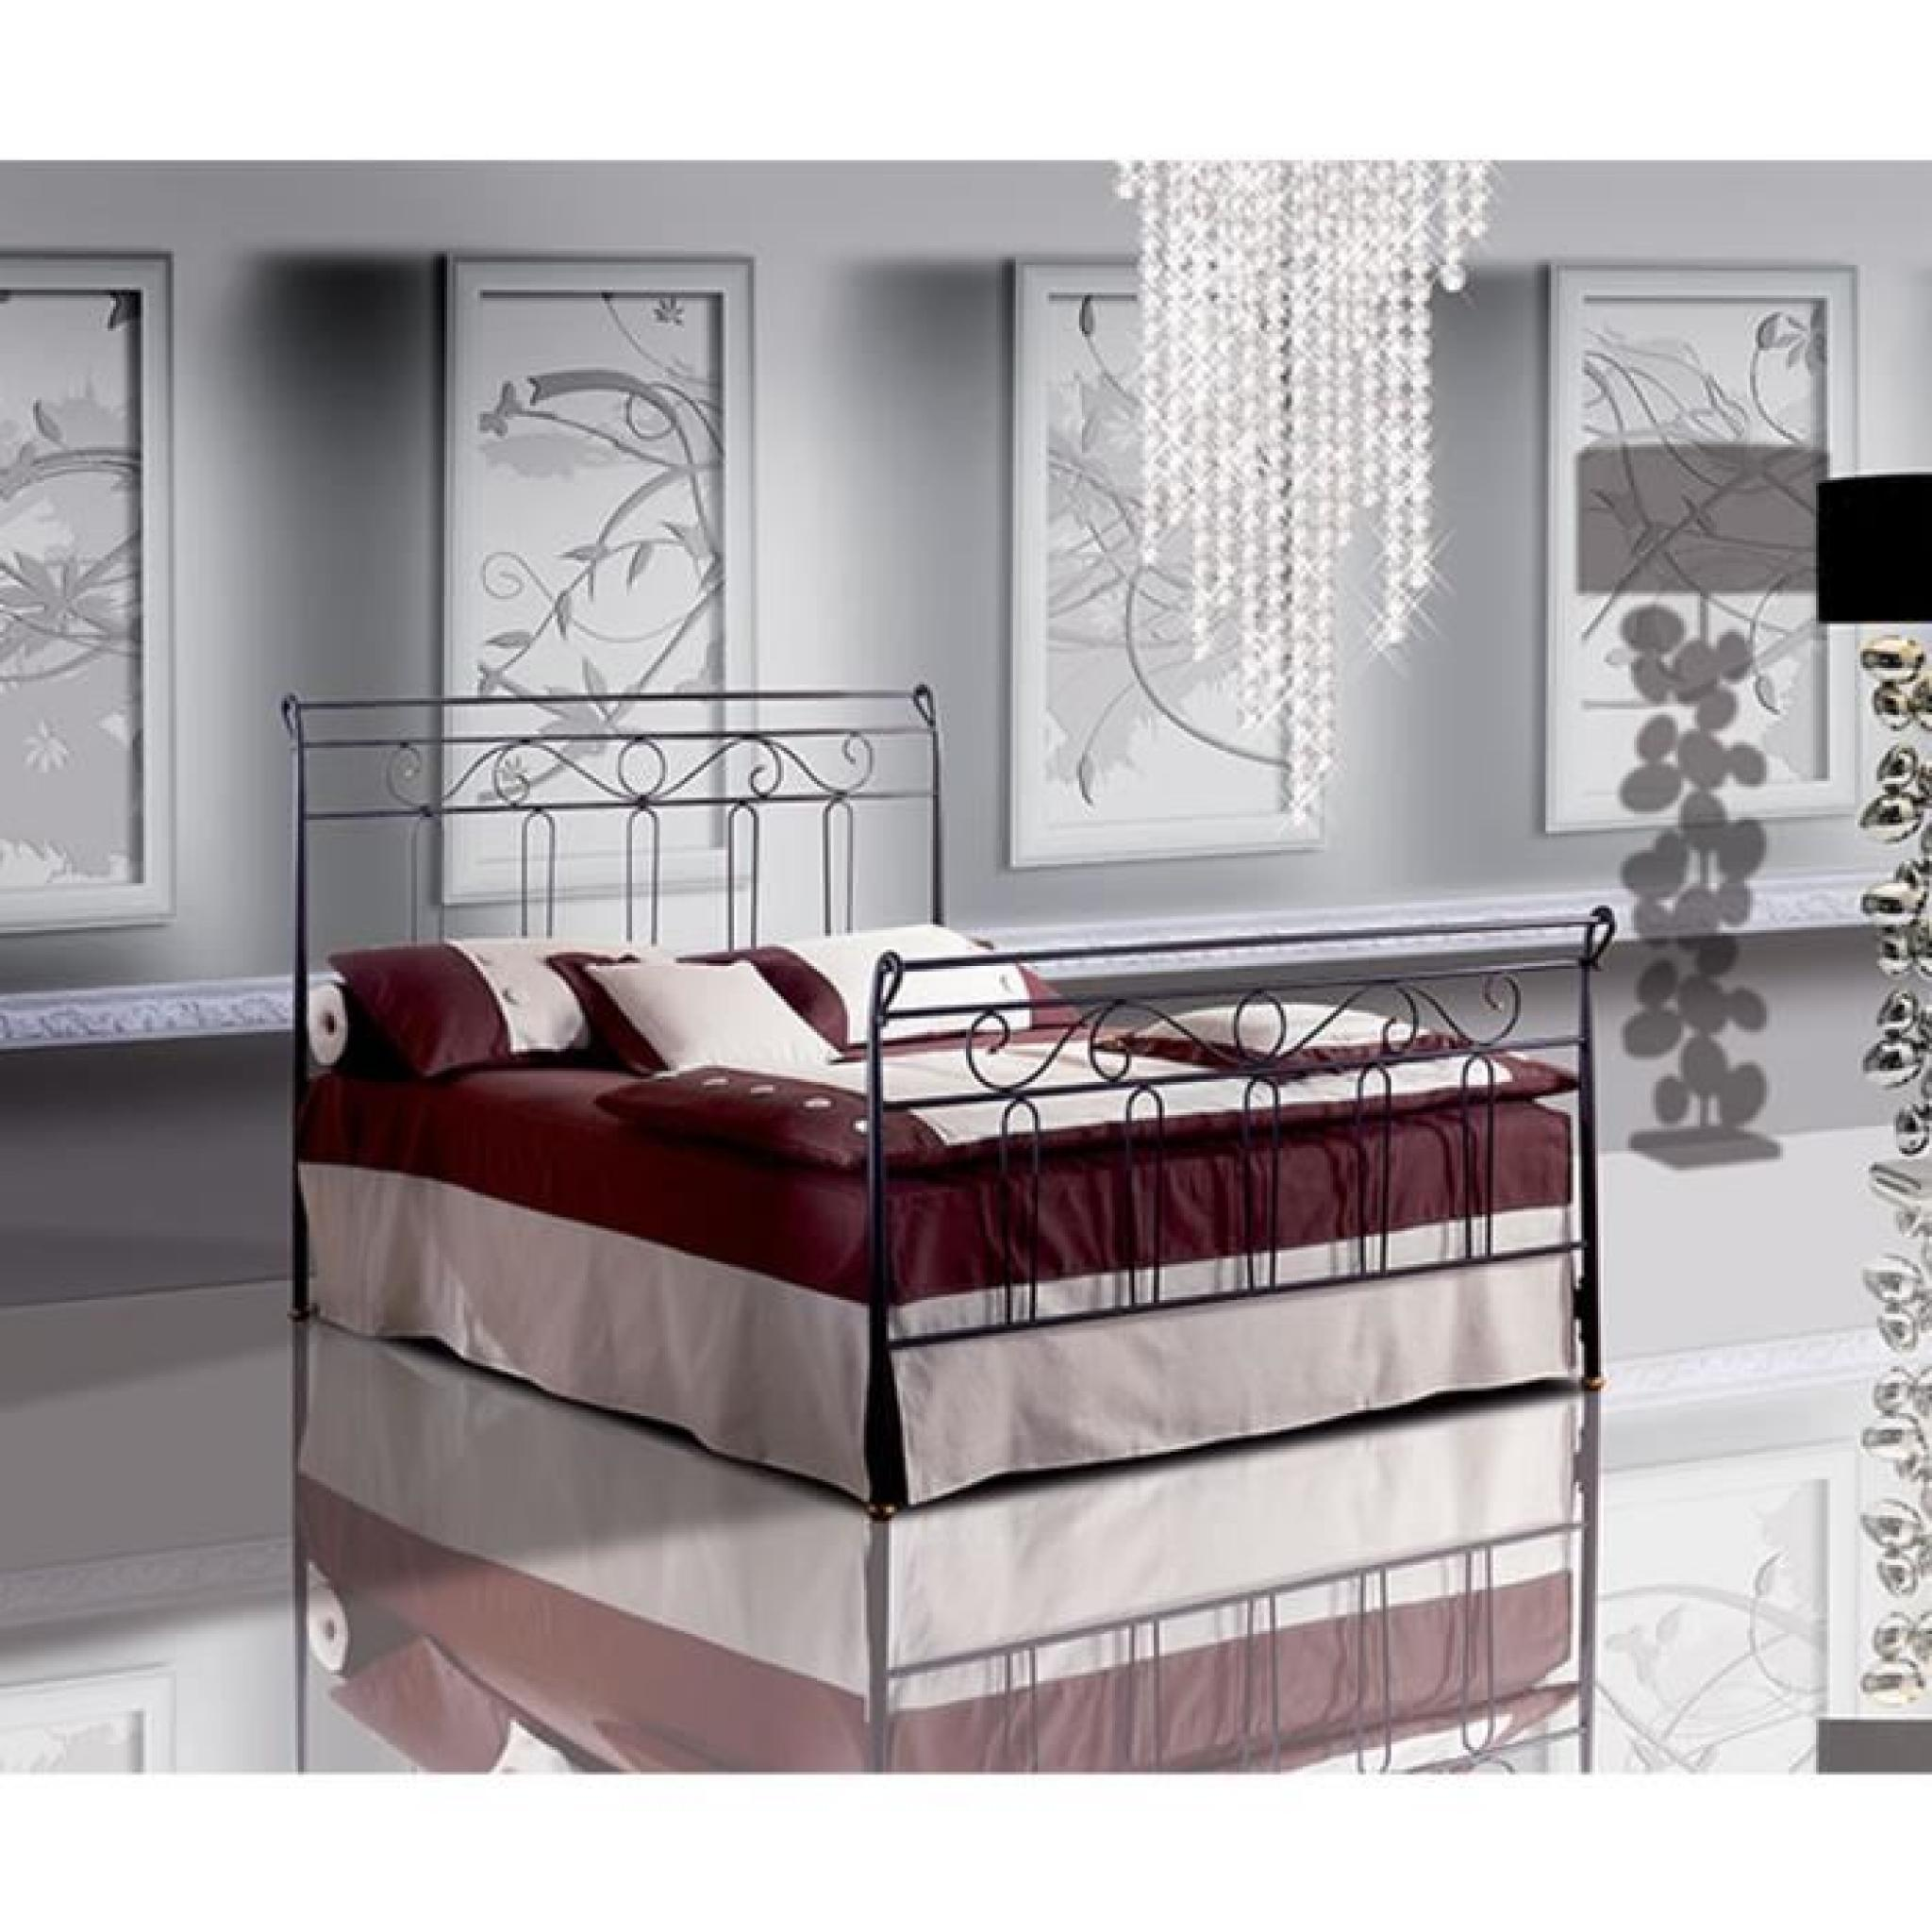 lit une place et demie en fer forg garofano t te de lit avec coffre achat vente lit pas cher. Black Bedroom Furniture Sets. Home Design Ideas